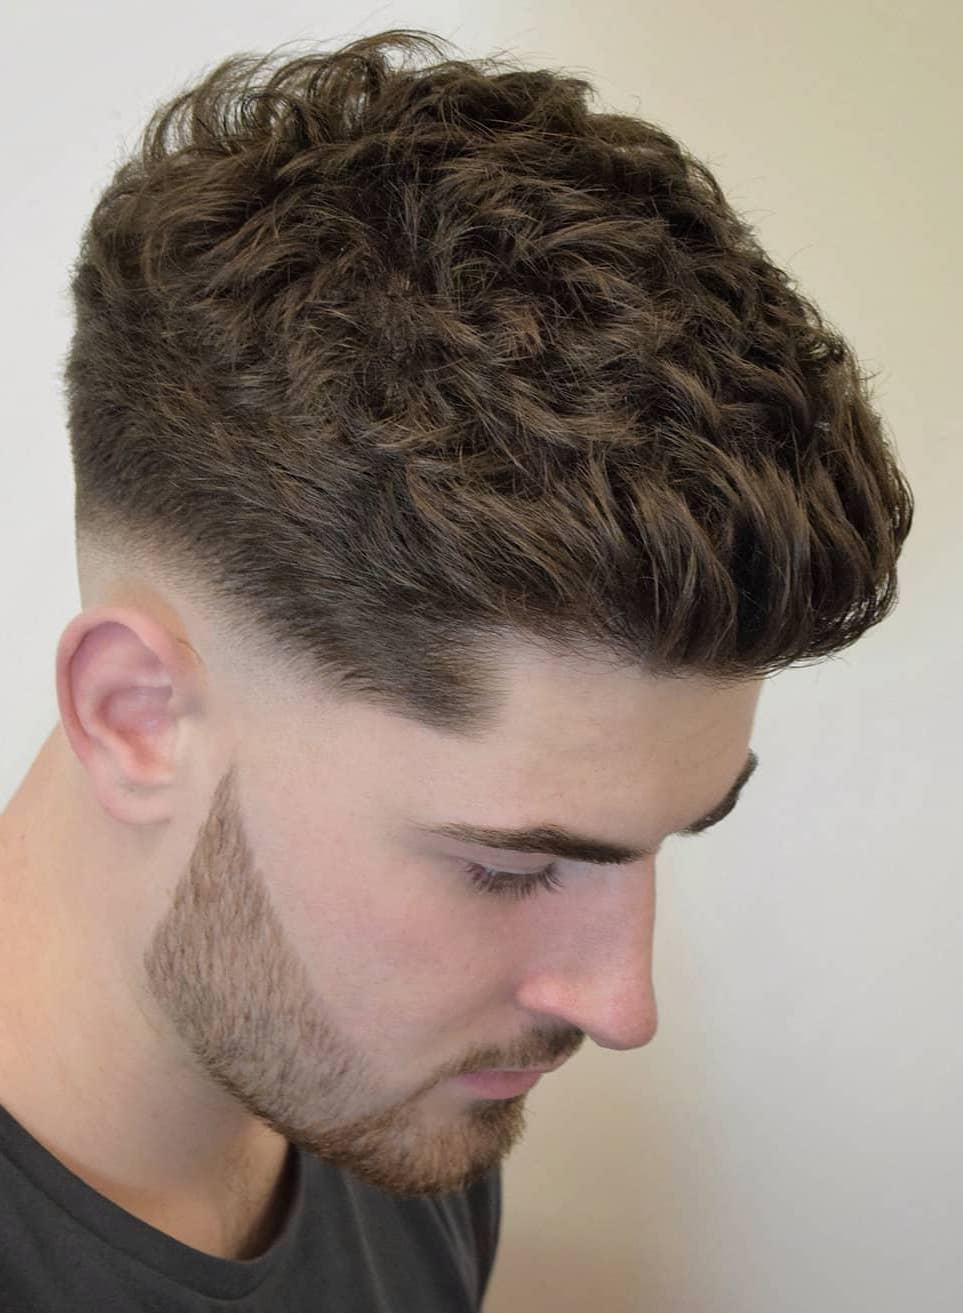 Messy Texture with Skin Fade